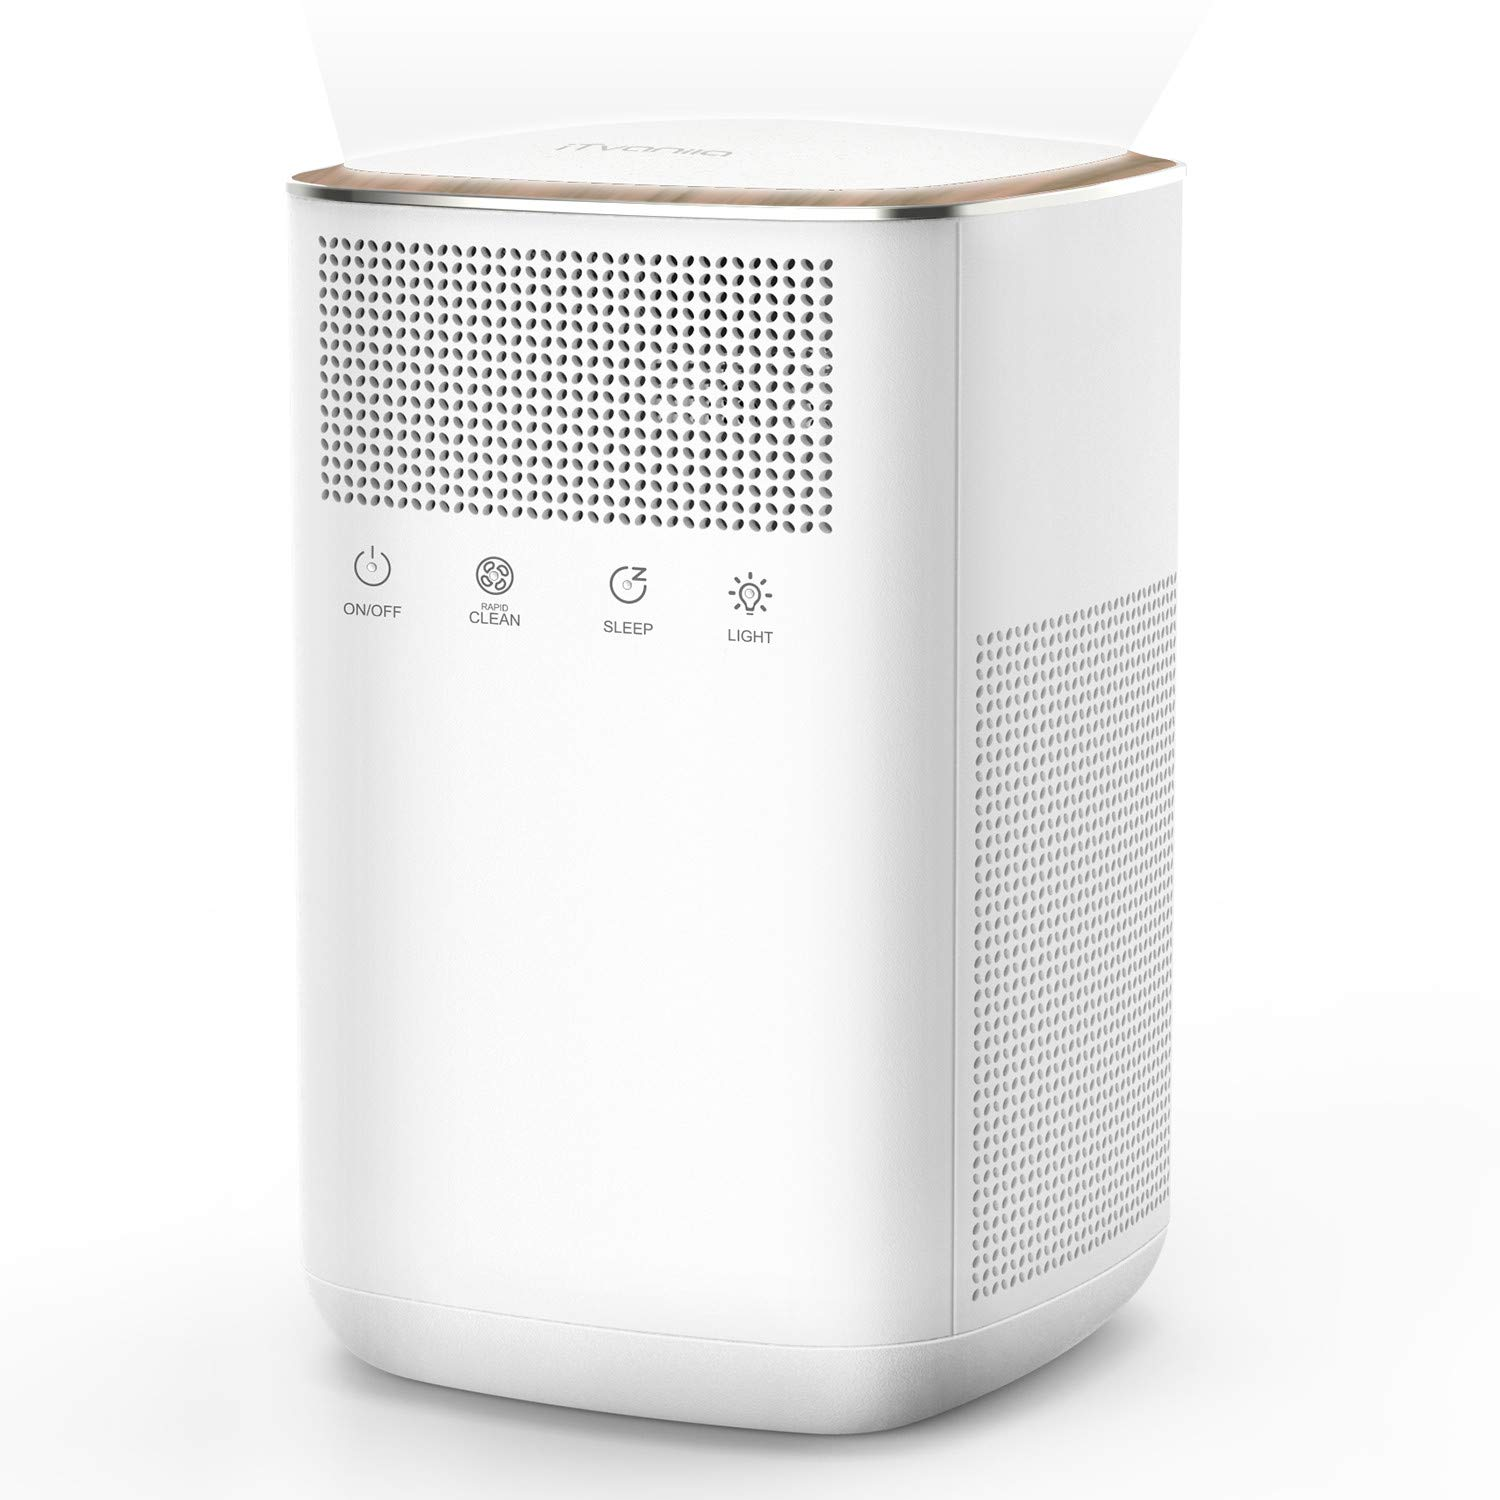 iTvanila Air Purifier with 3M True HEPA Filter, Room Air Purifiers, Quiet and 99.97% Air Cleaner Purifier, Odor Allergies Eliminator for Smoke, Dust, Mold, Pollen, Pets,Home, with Night Light